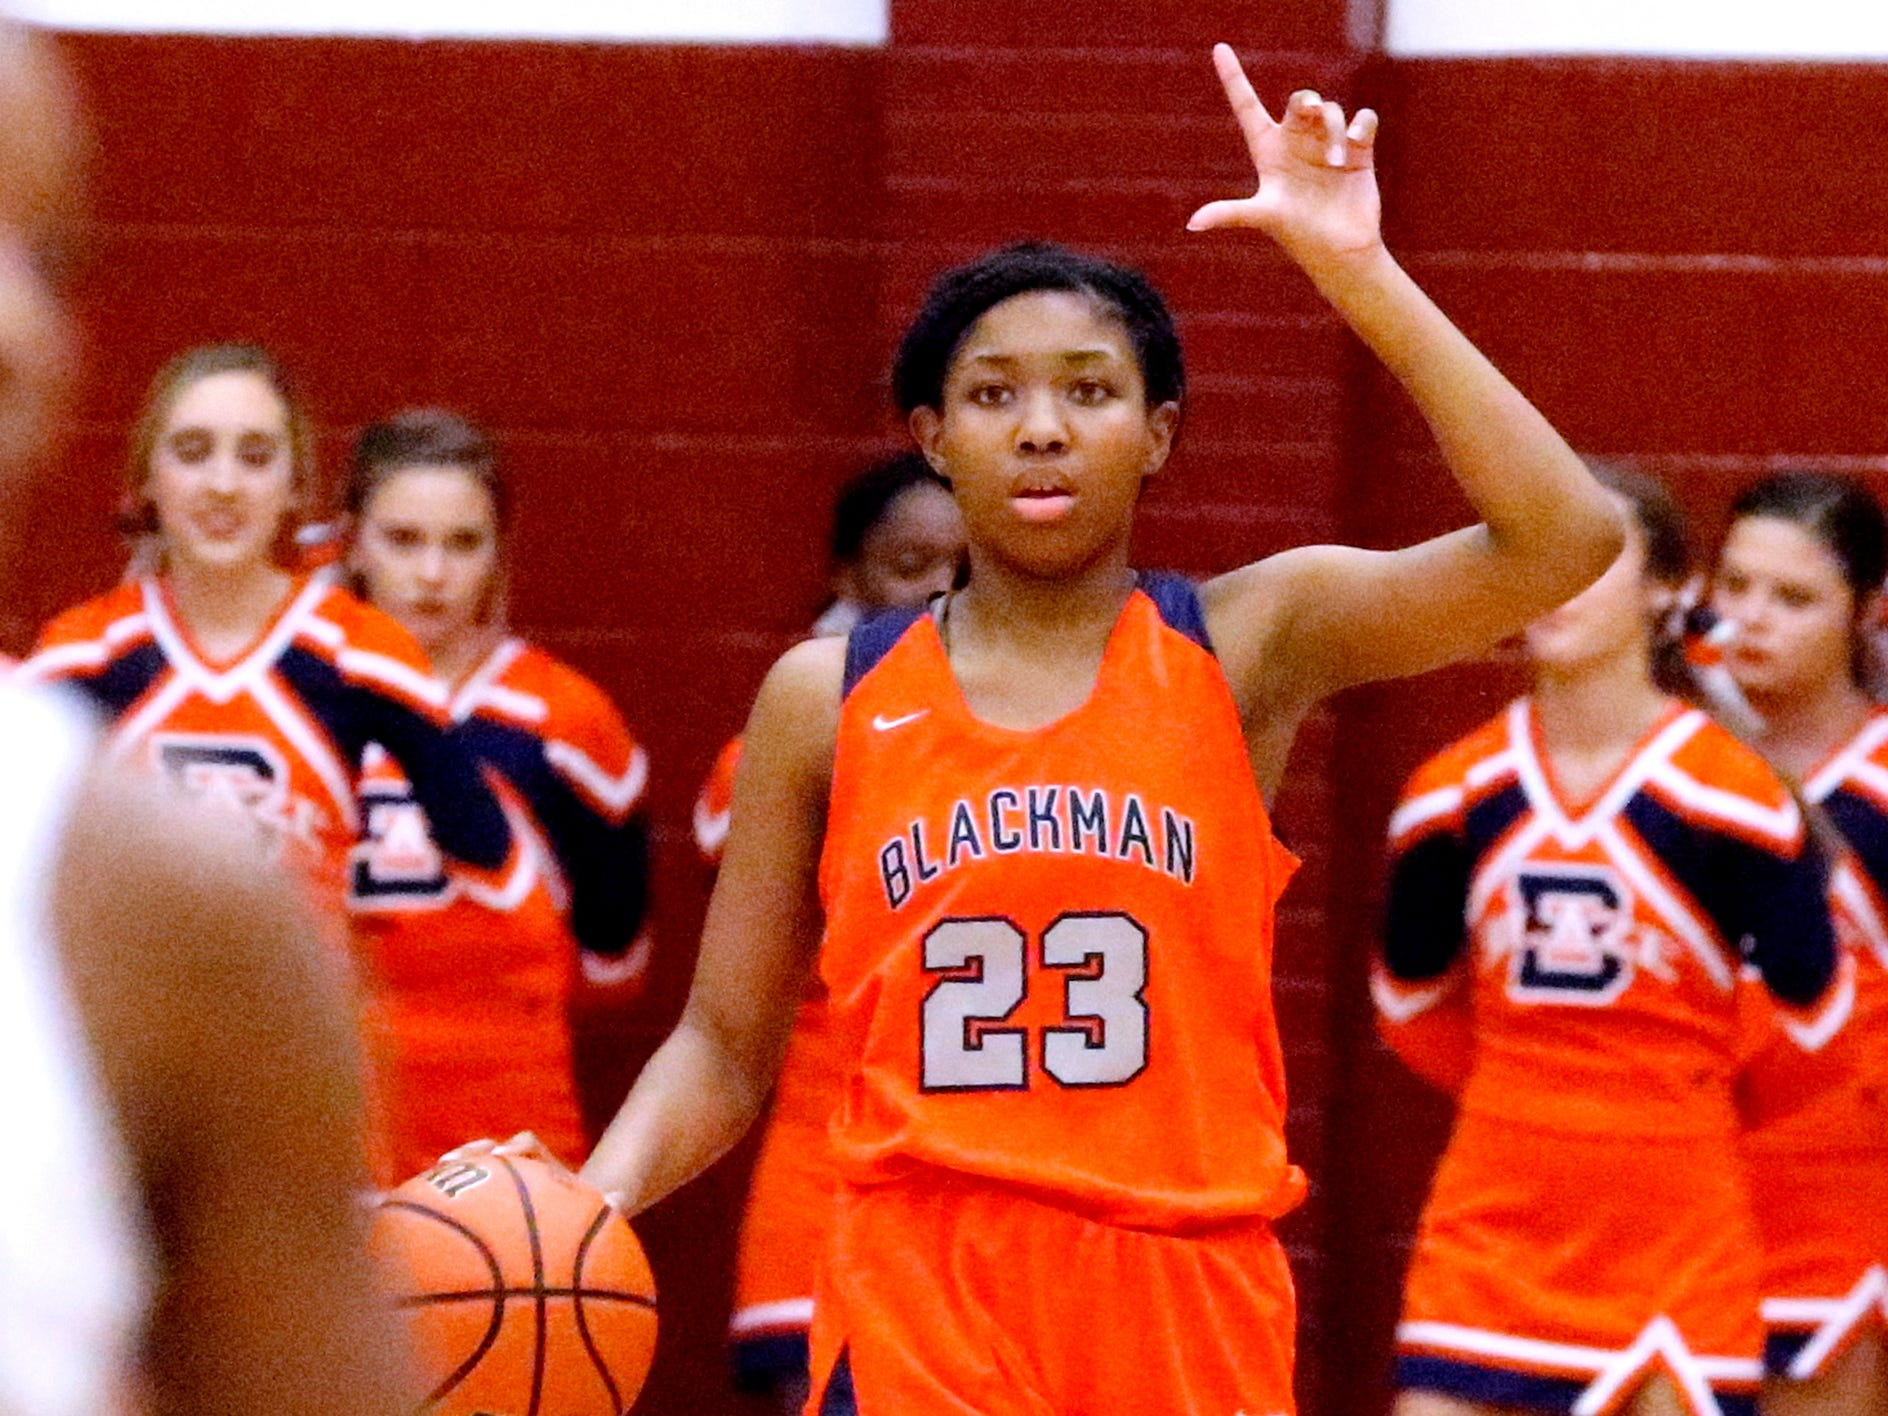 Blackman's Iyana Moore (23) brings the ball down the court during the game against Riverdale on Tuesday Jan. 8, 2019.